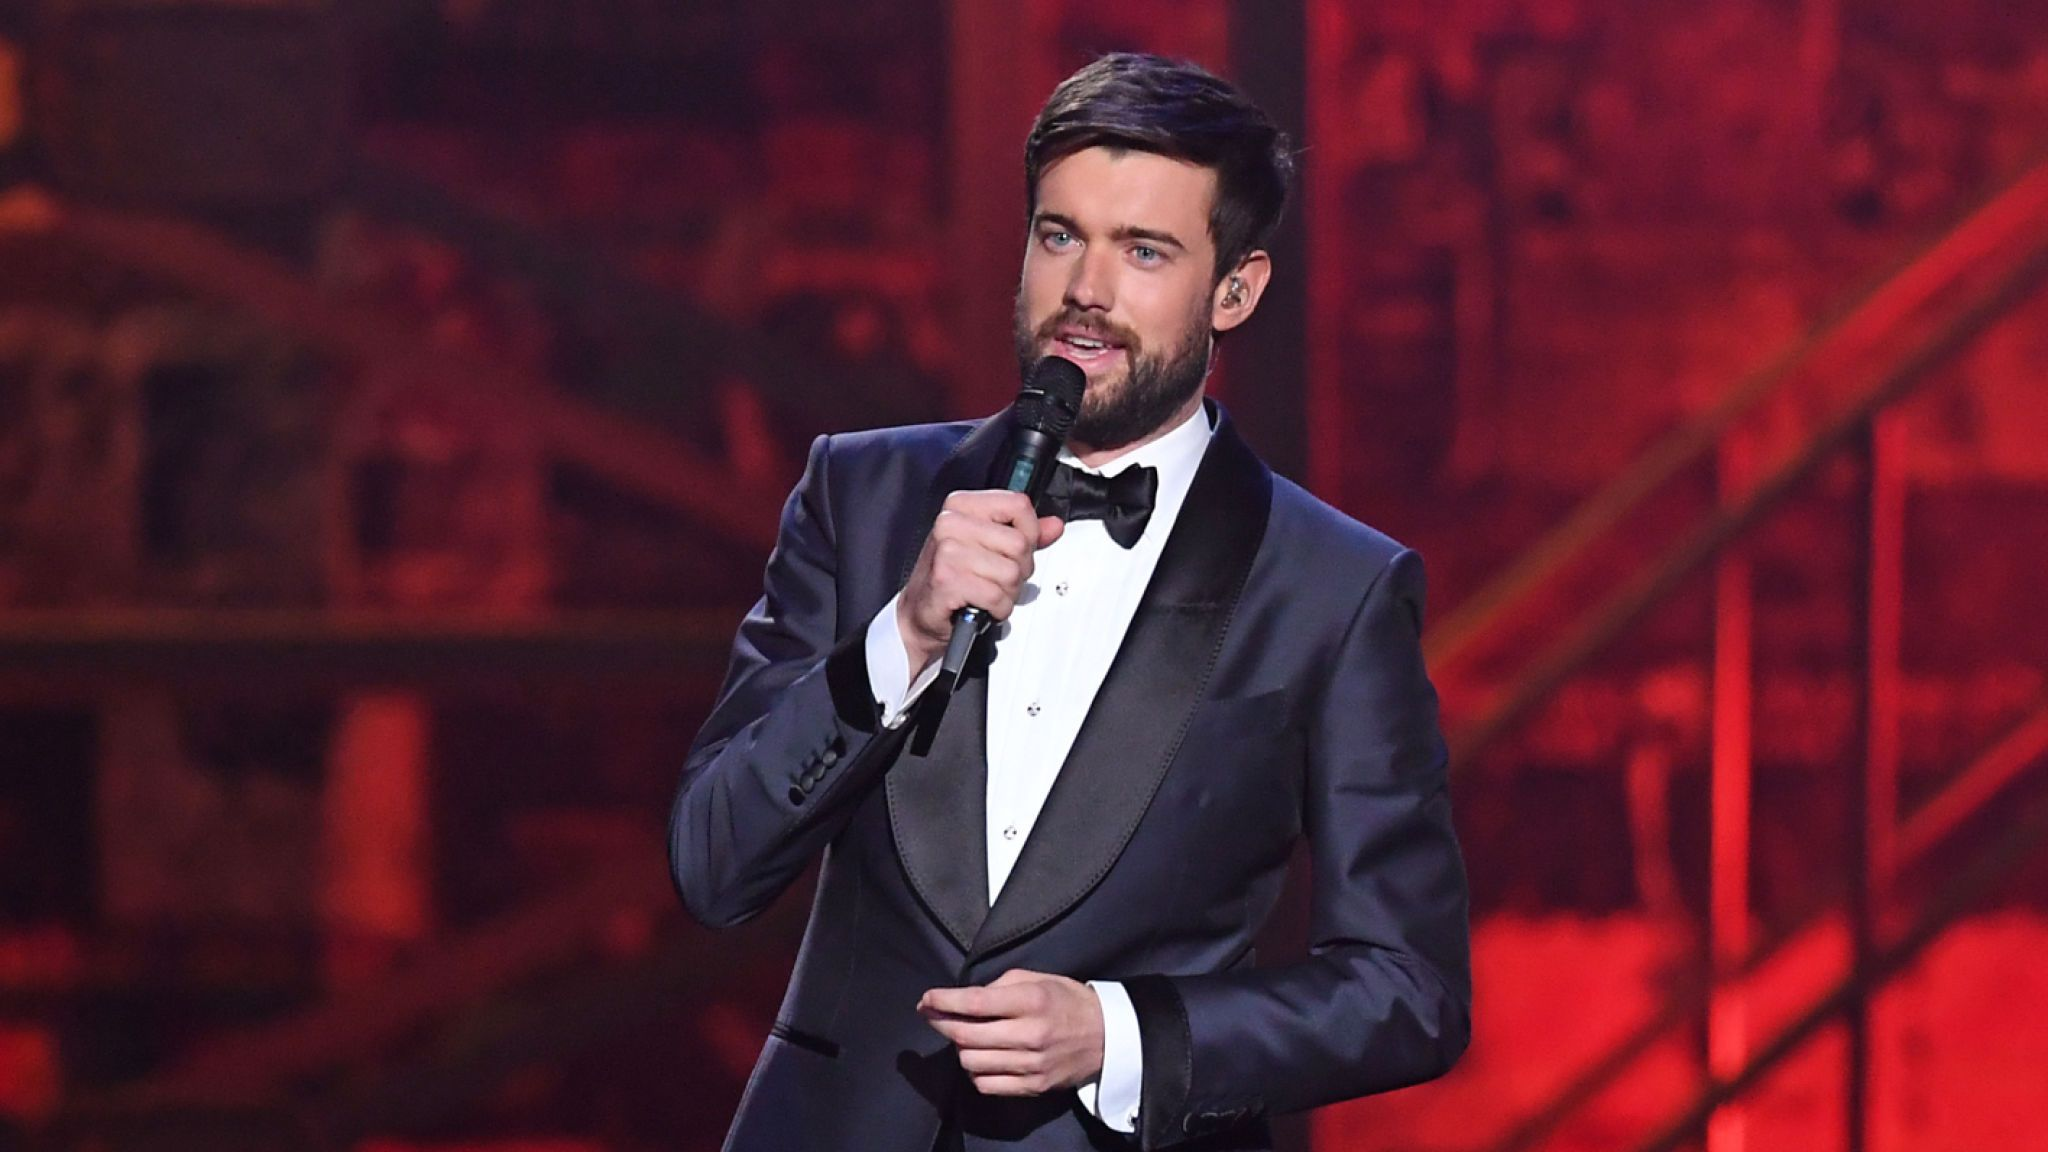 Jack Whitehall at the Brits 2020